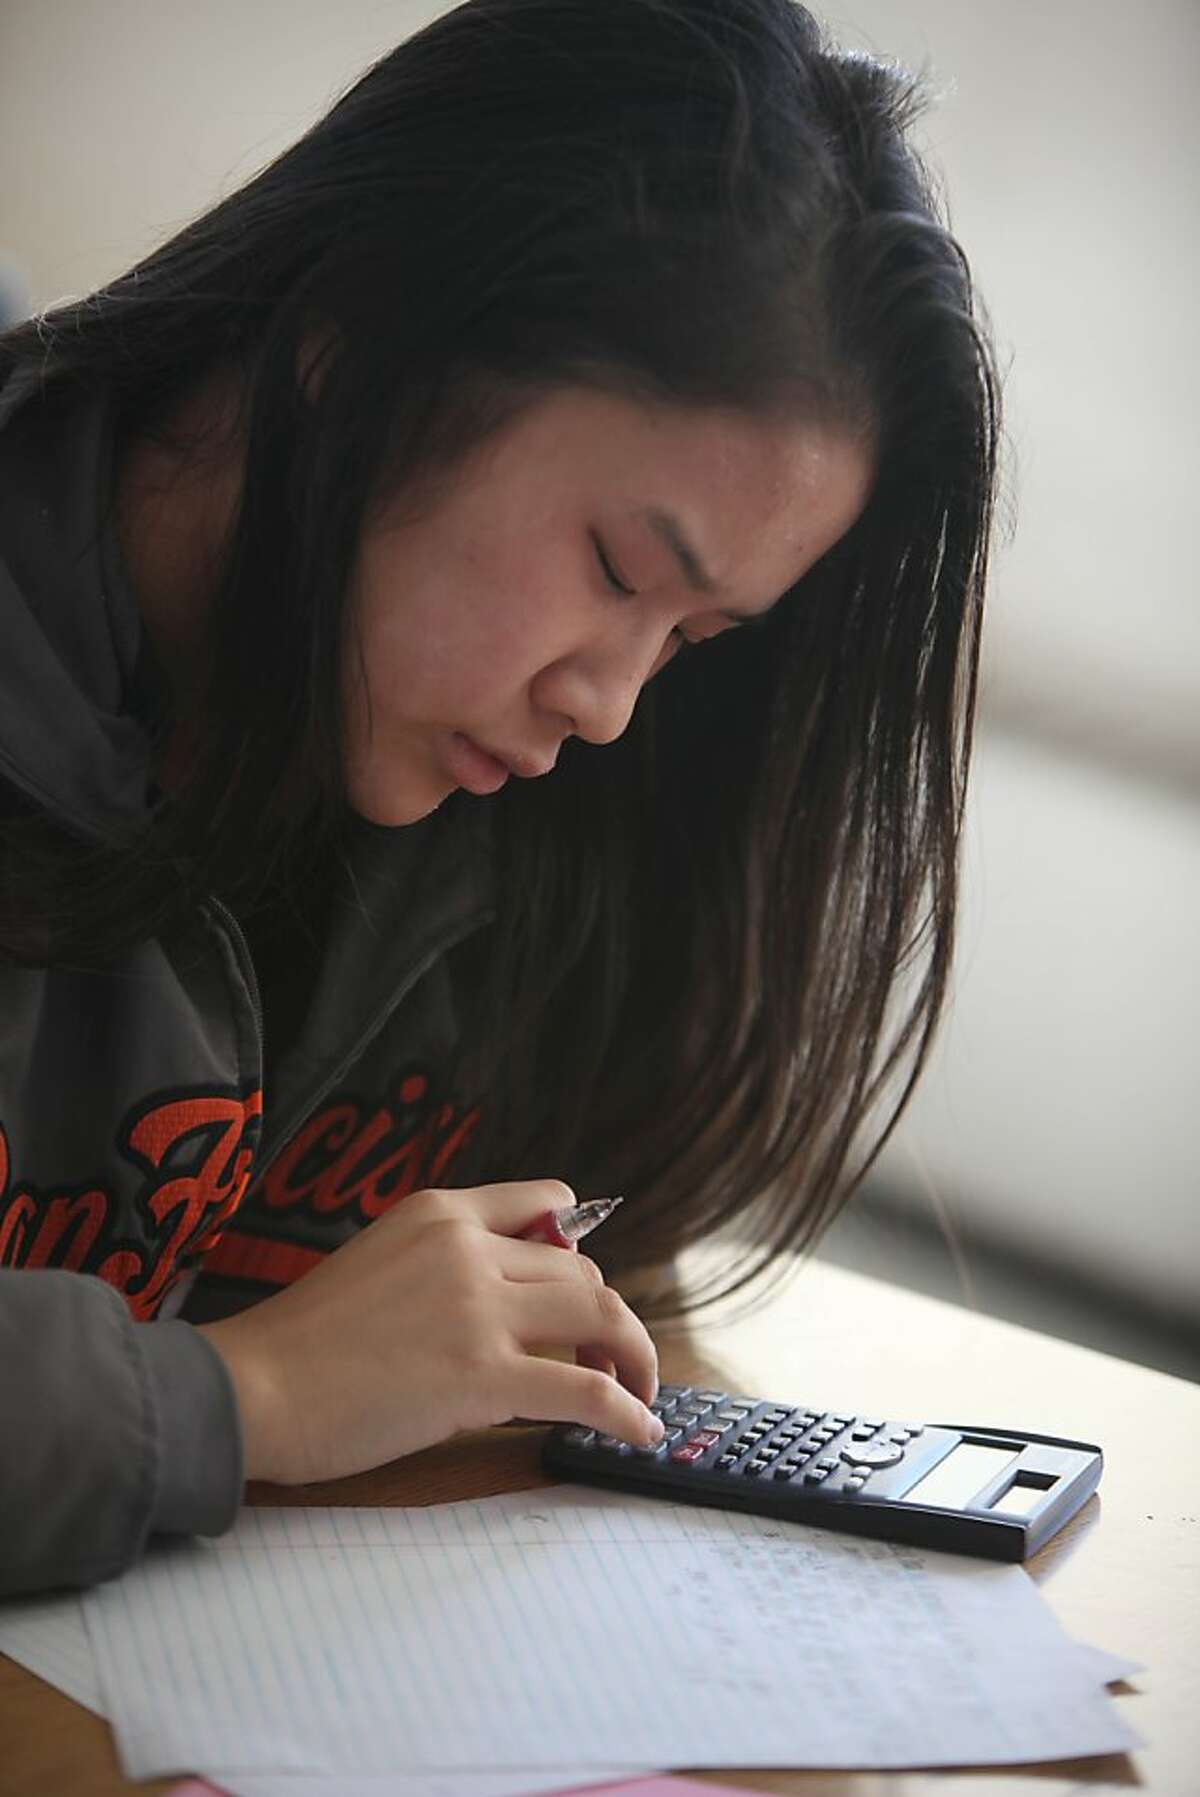 Chelsea Nguyen, 15, works on classwork during an Algebra II class at Phillip and Sala Burton Academic High School on Wednesday, October 2, 2013 in San Francisco, Calif.